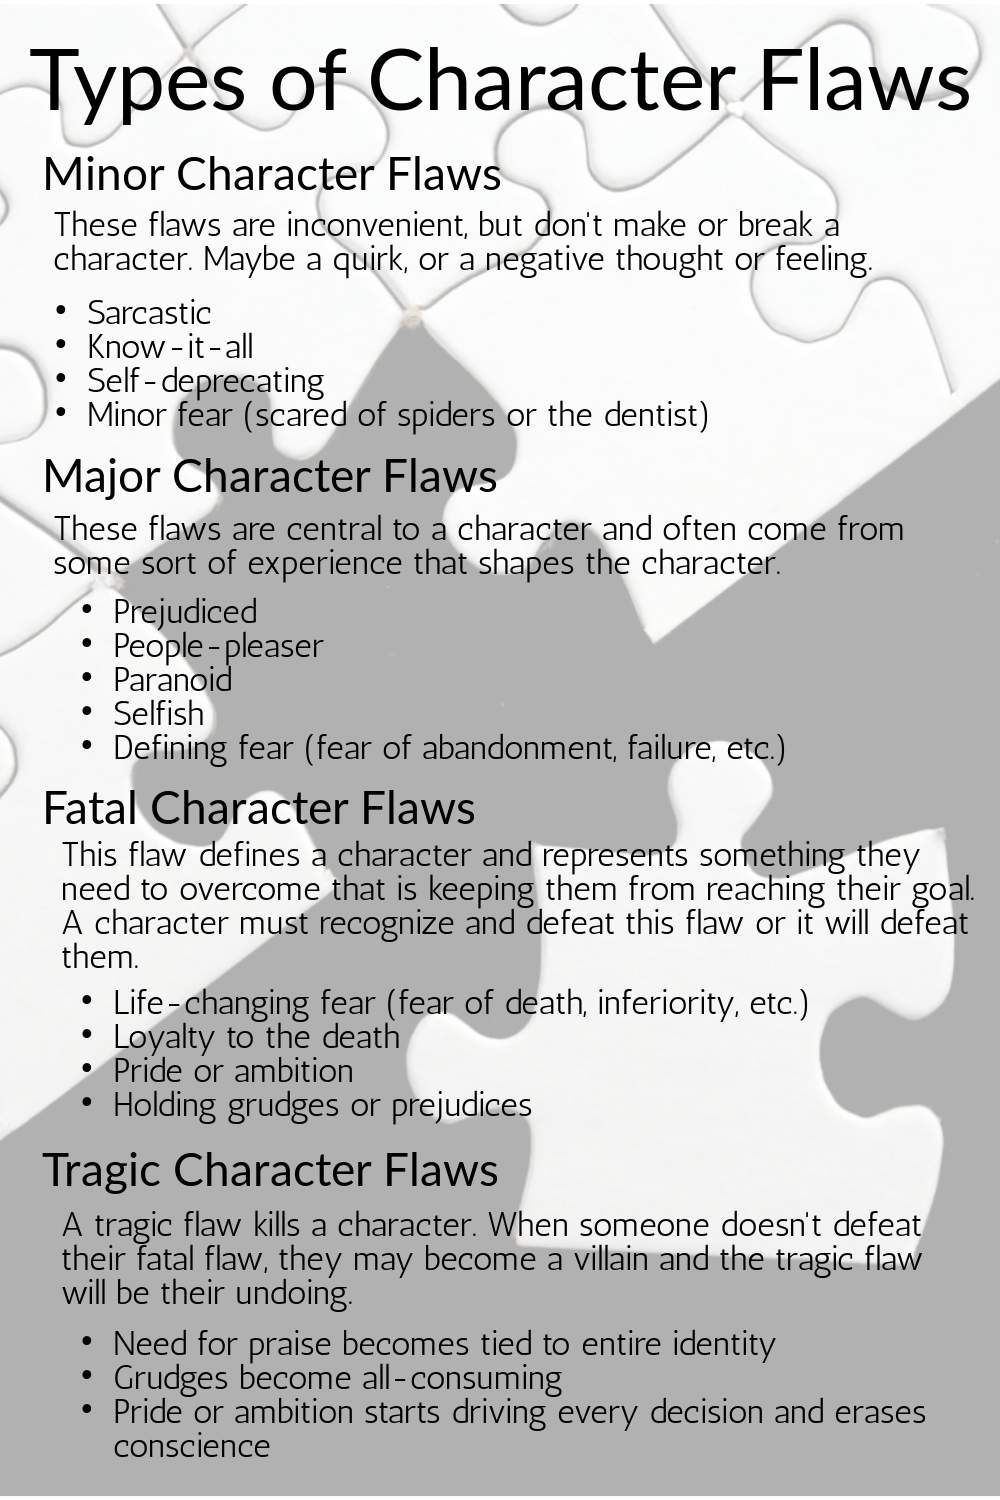 Types of Character Flaws